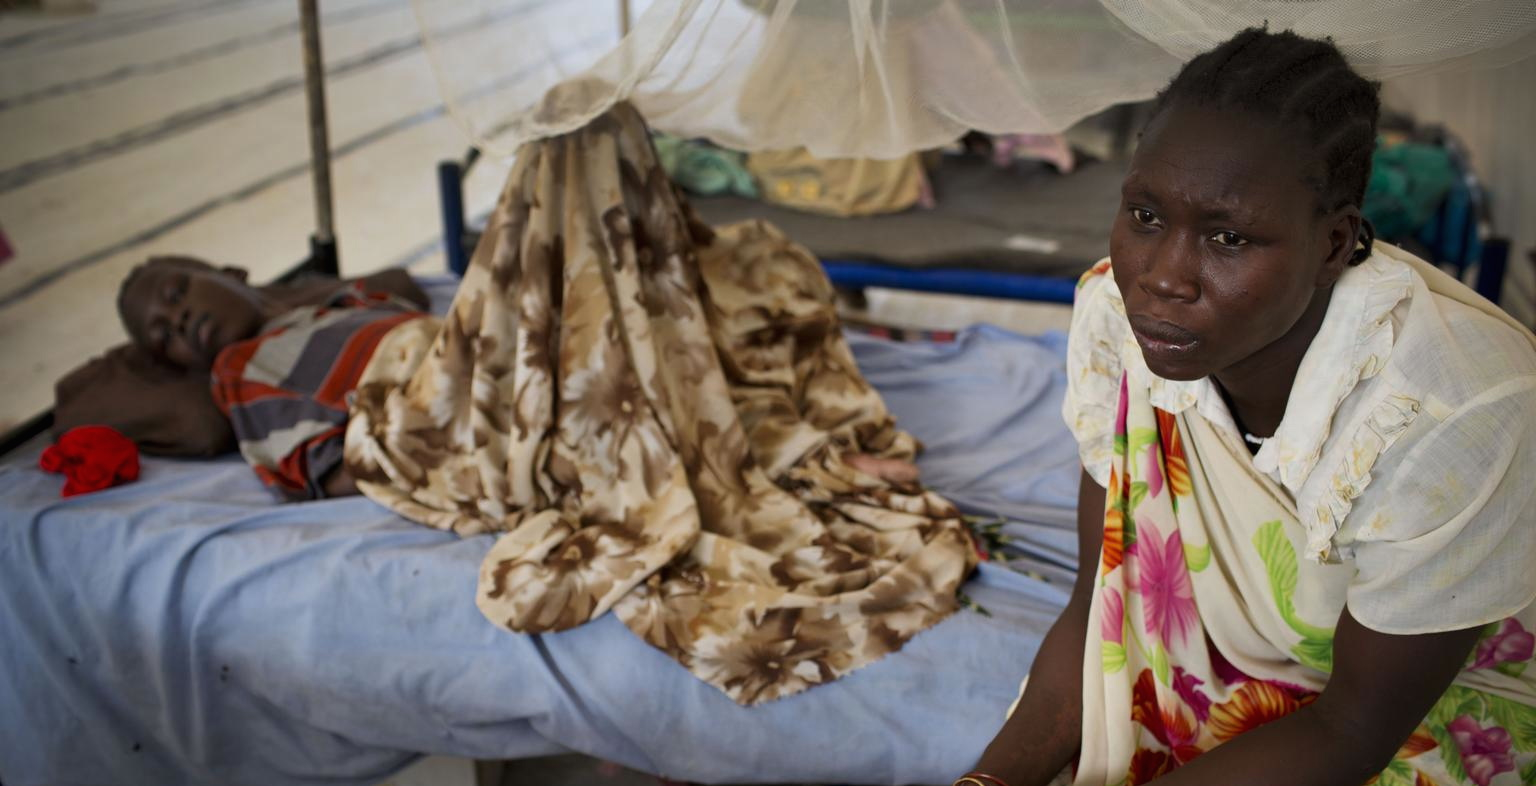 A displaced woman sits at her daughter's bedside in a UNICEF-supported emergency medical center in Malakal, South Sudan.